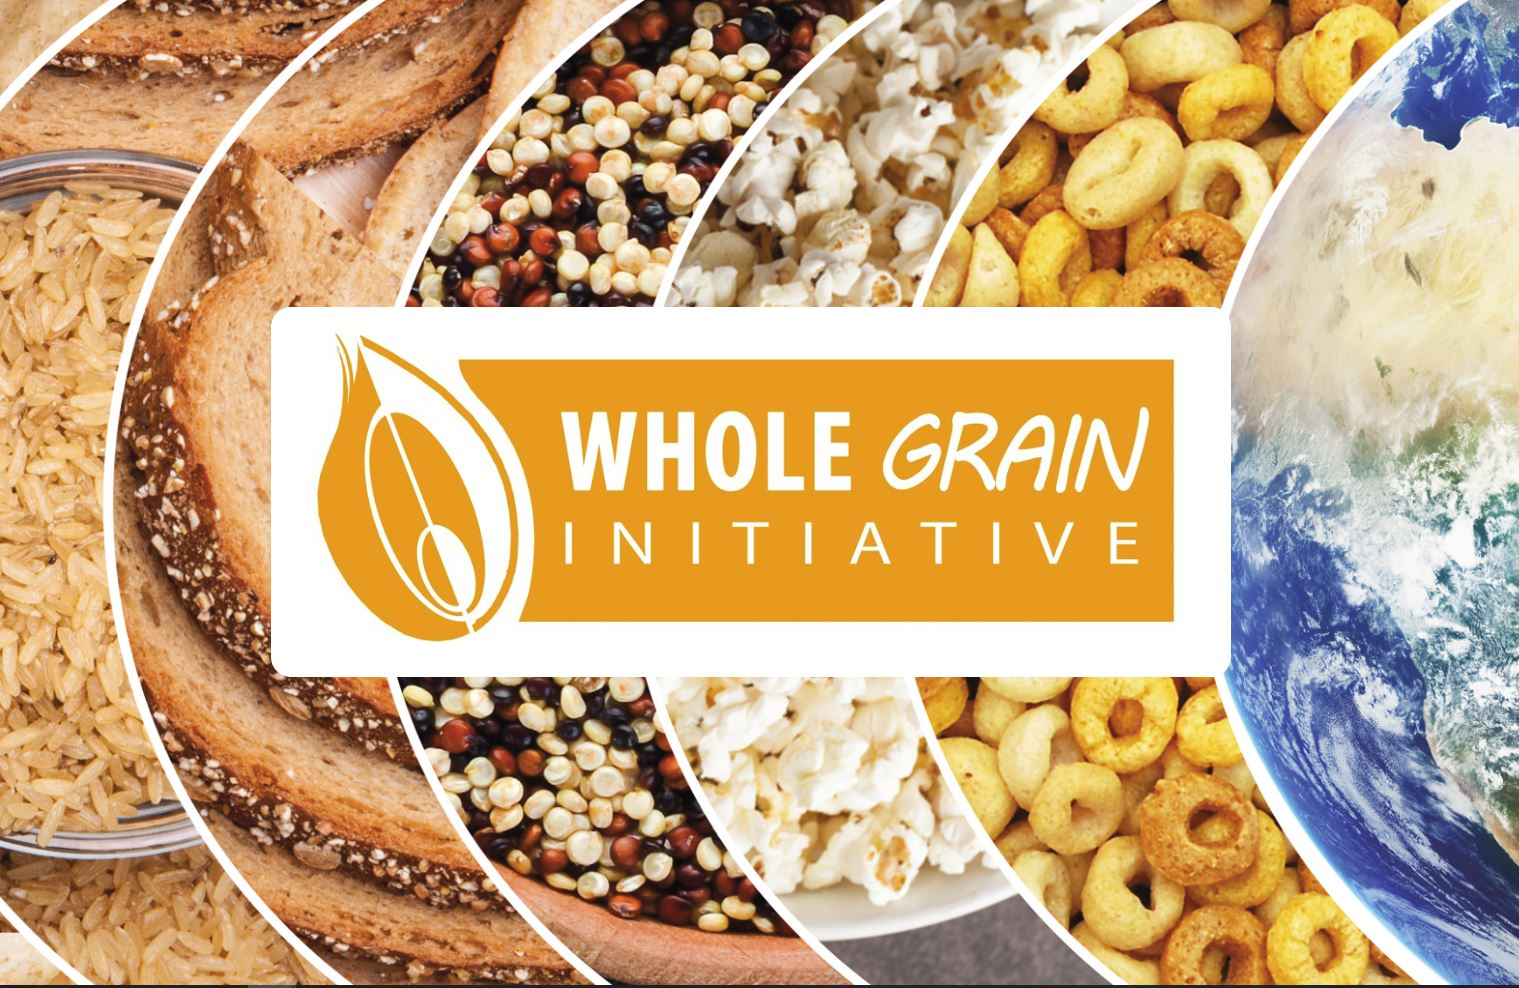 Press release: The Whole Grain Initiative launches the first International Whole Grain Day and calls to take whole grain seriously